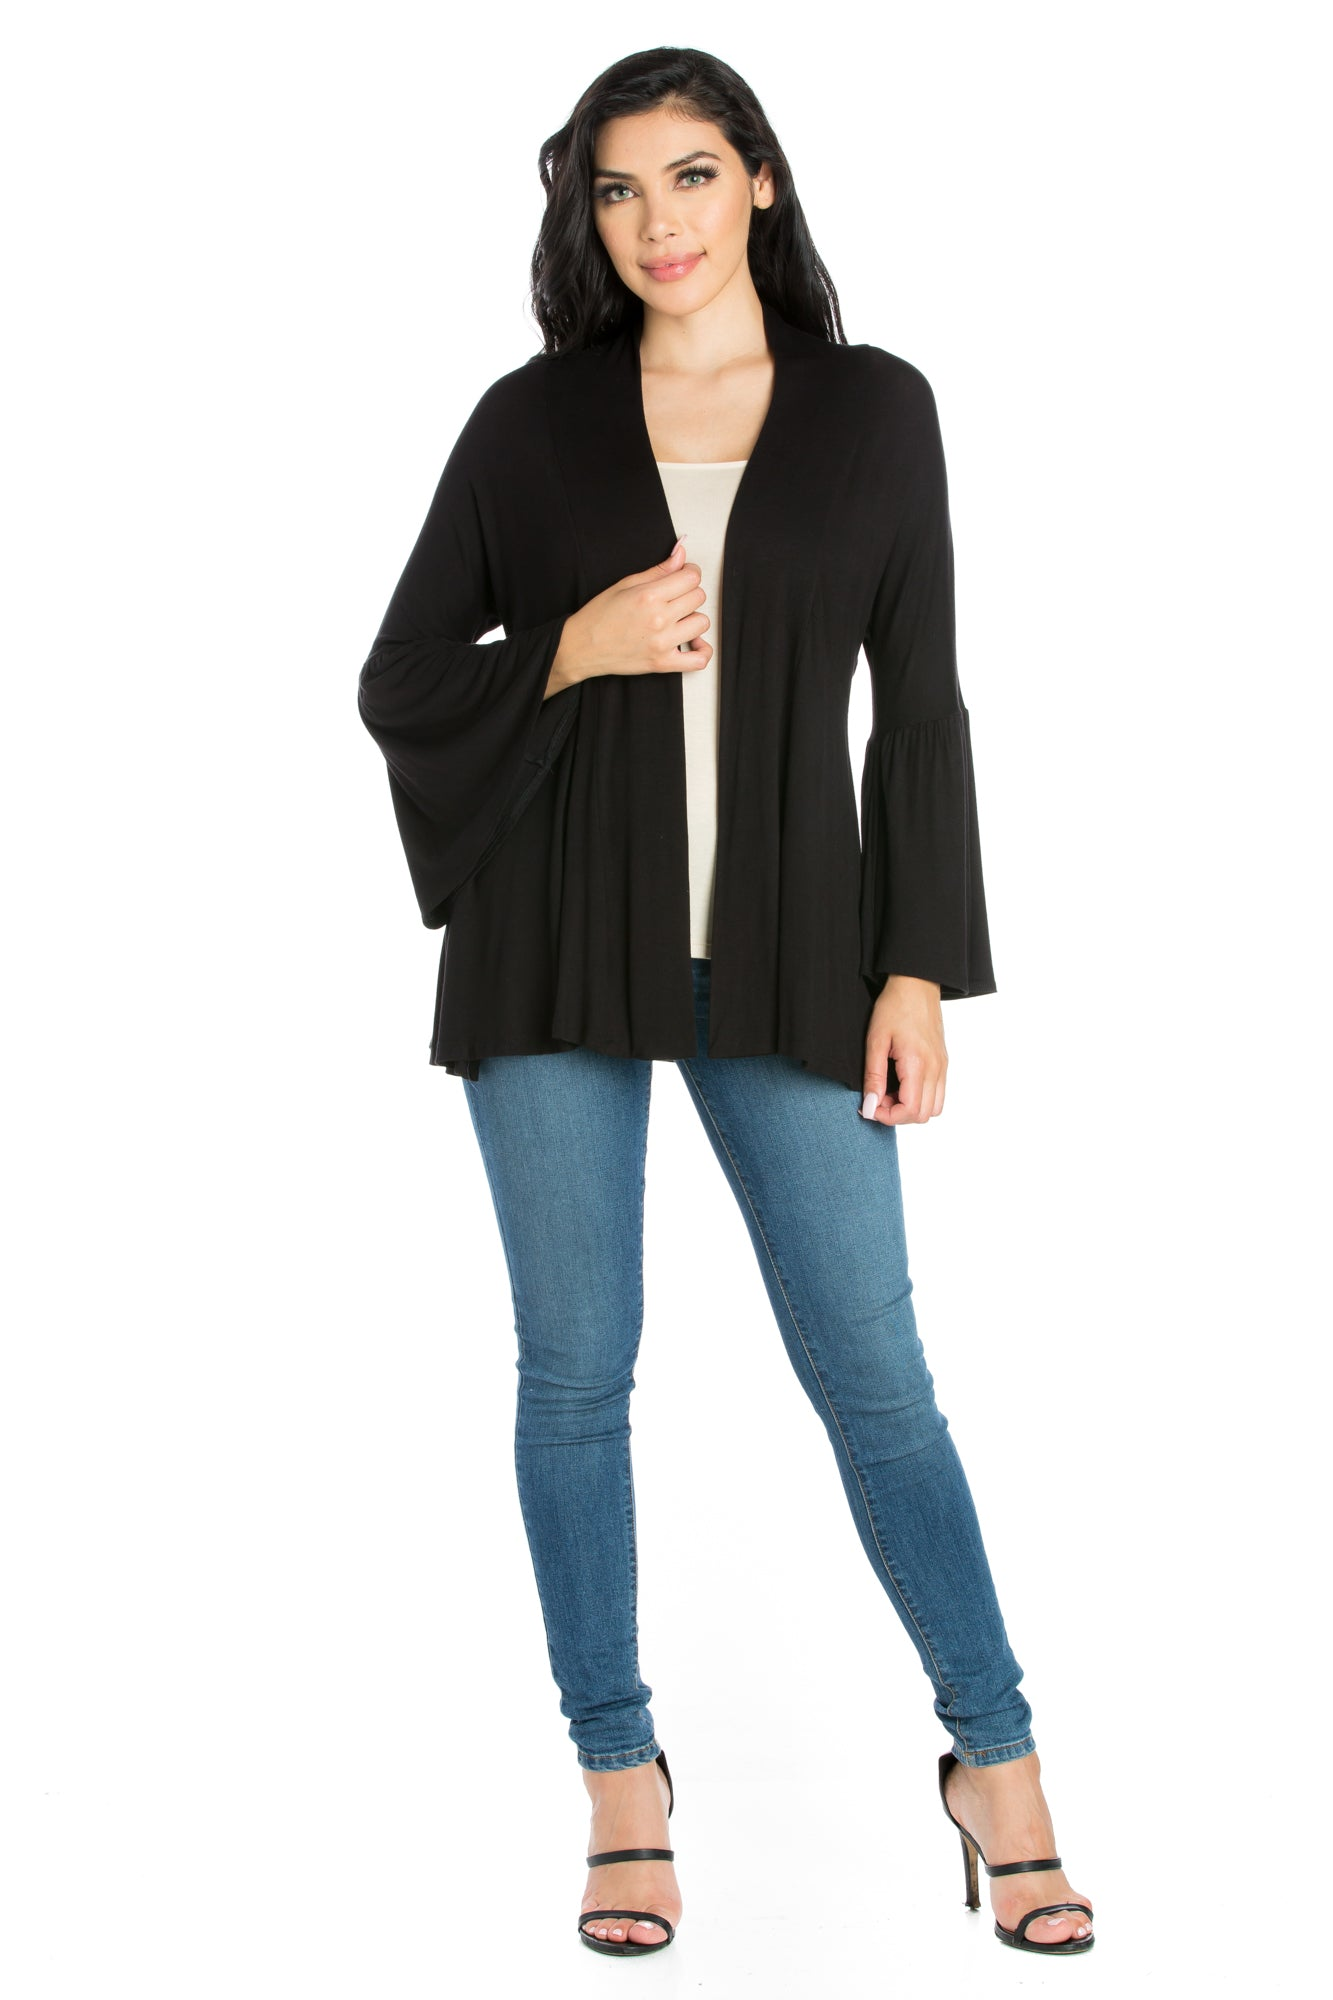 24seven Comfort Apparel Bell Sleeve Flared Open Front Cardigan-SHRUGS-24Seven Comfort Apparel-BLACK-S-24/7 Comfort Apparel